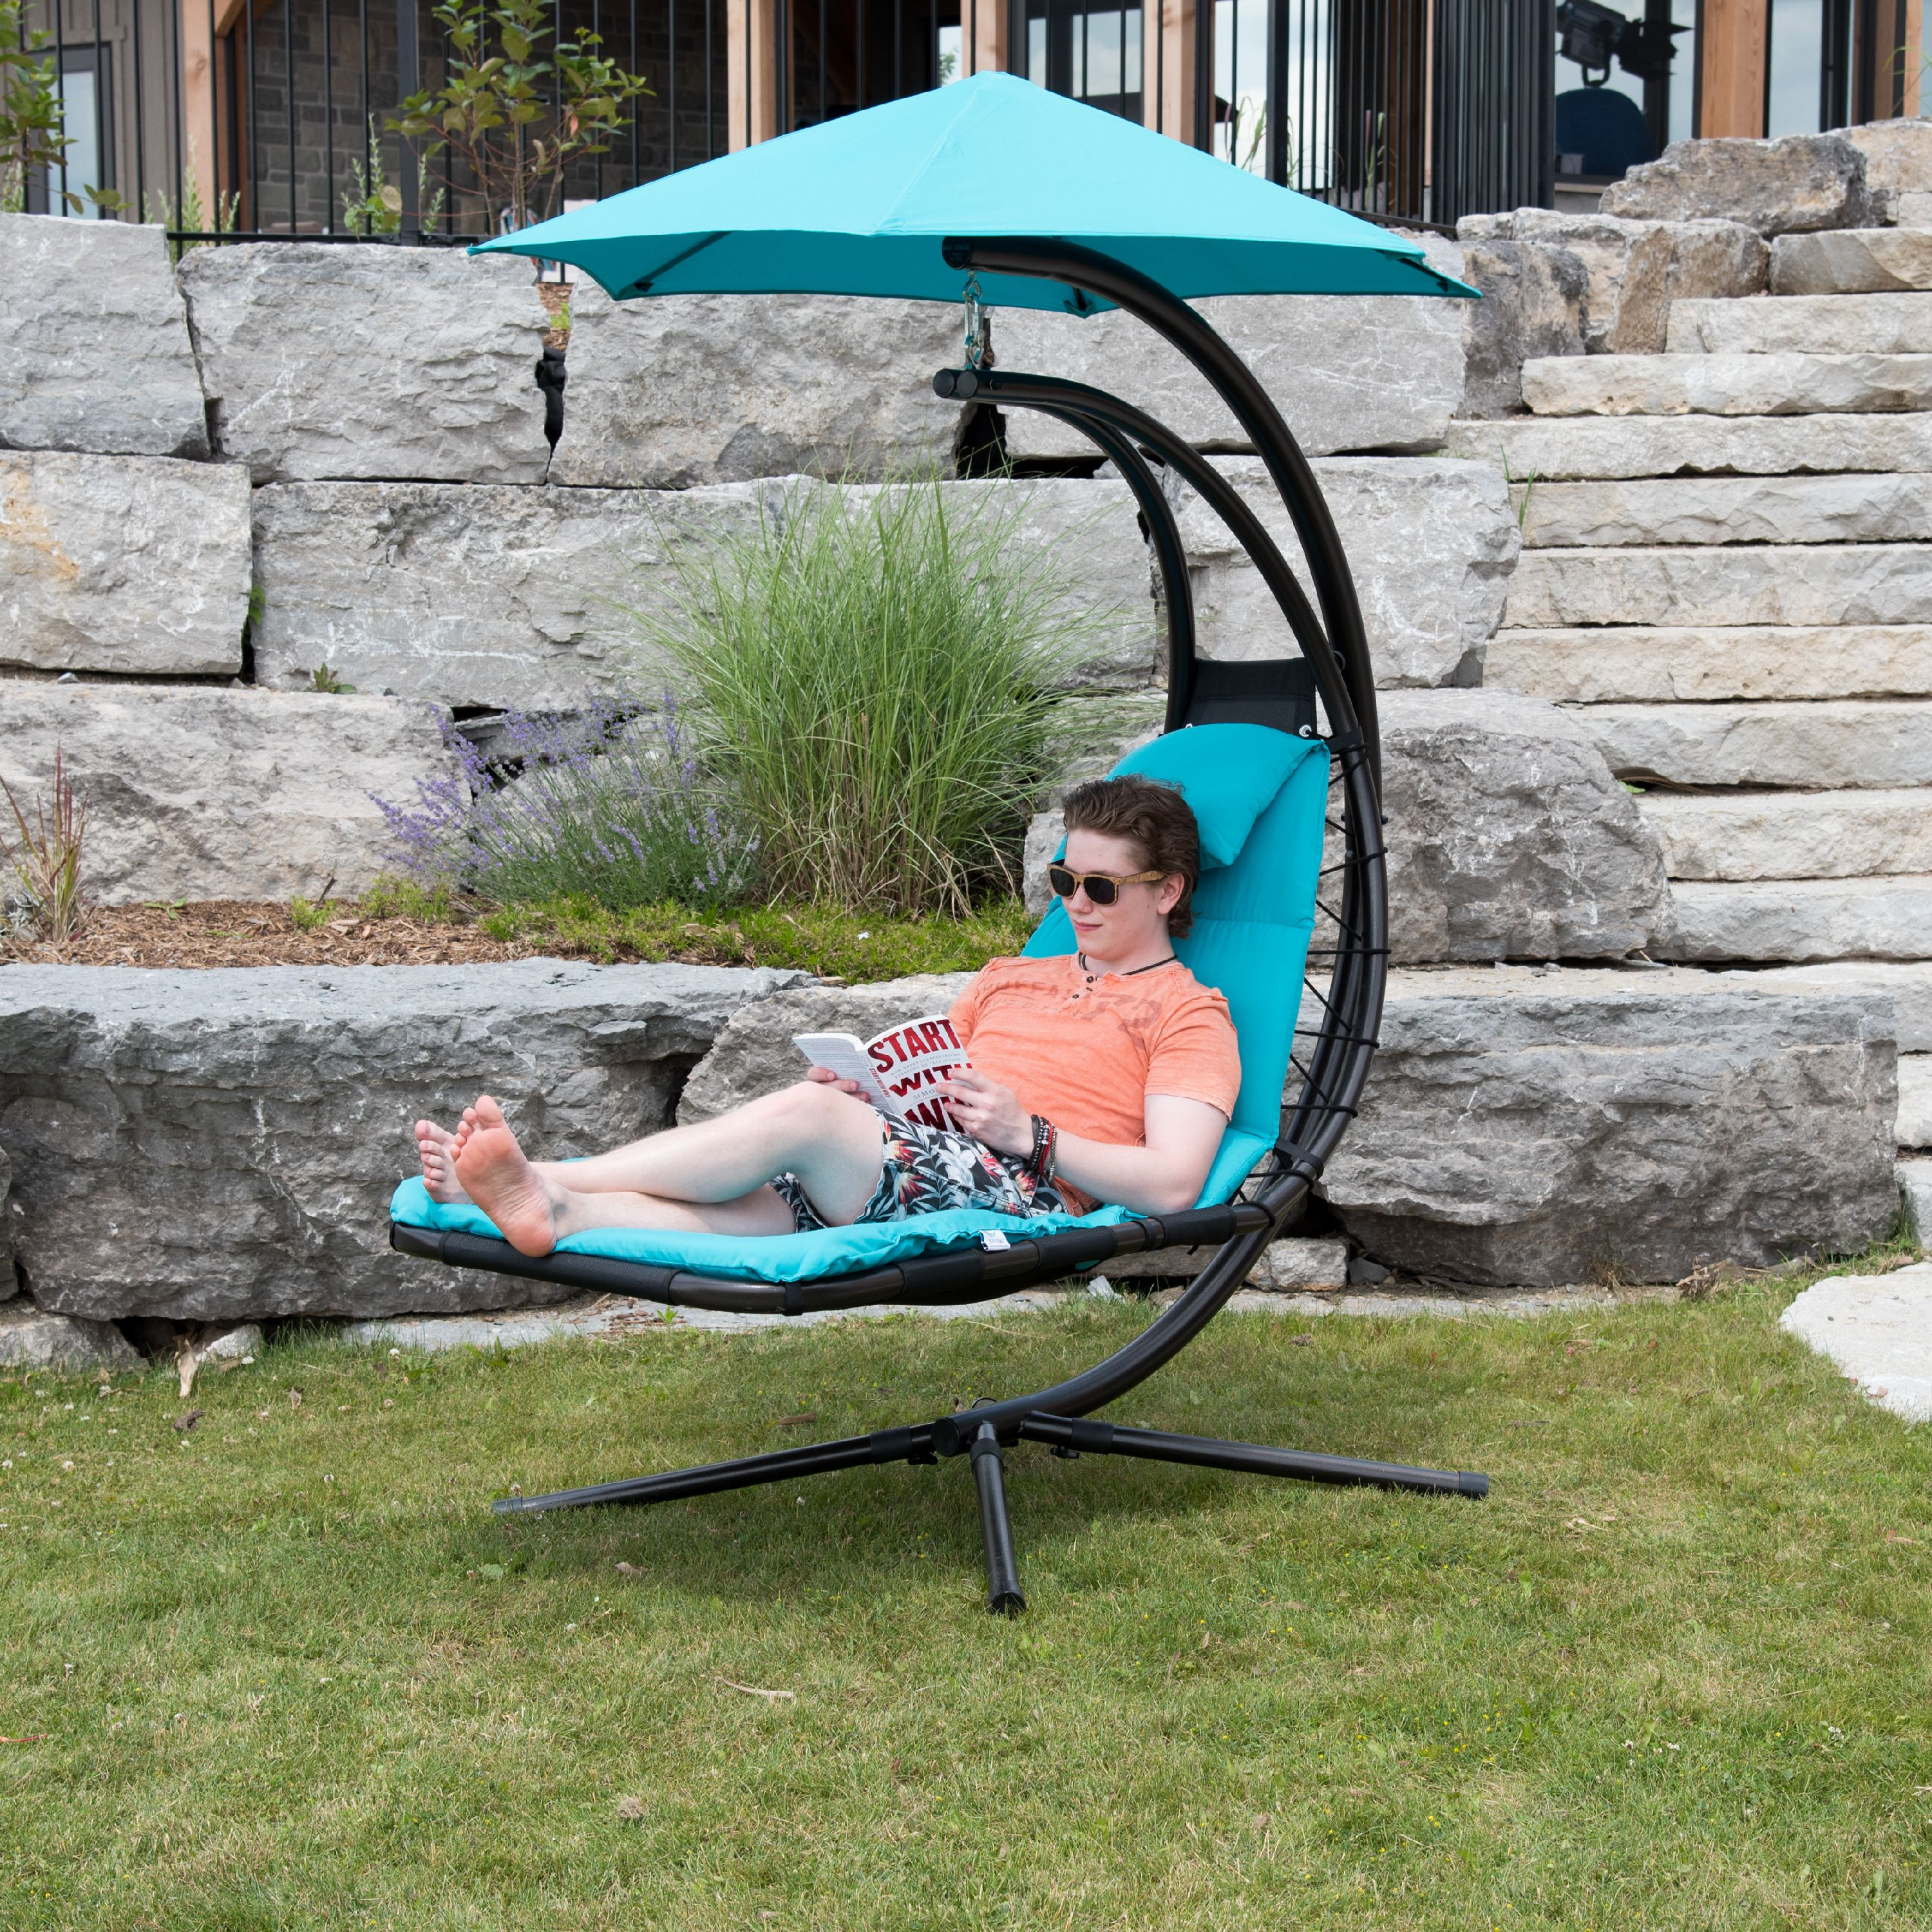 The Original Dream Chair, True Turquoise